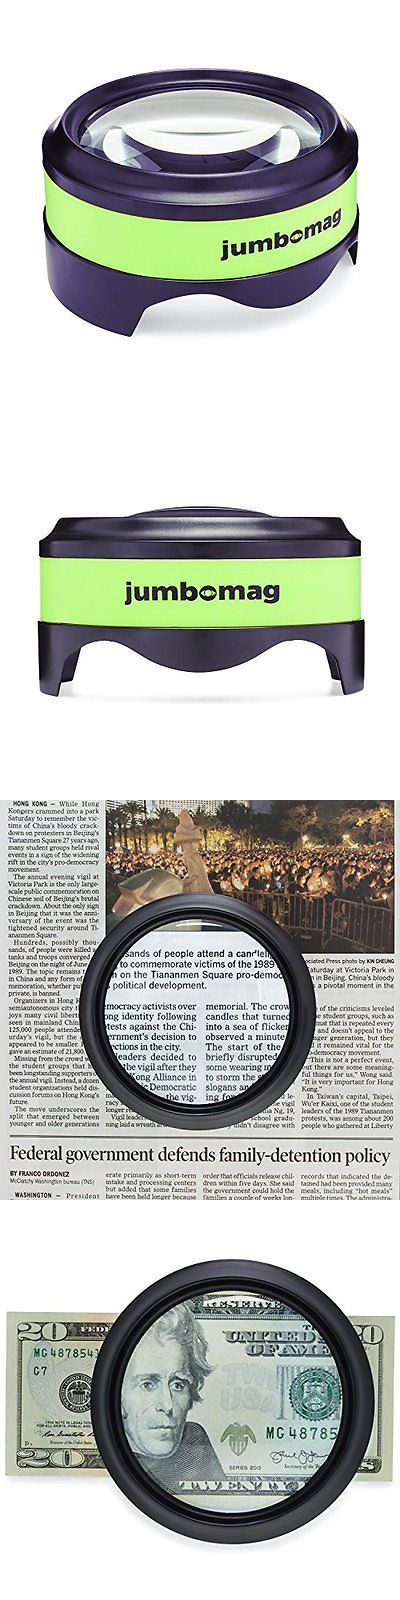 Low Vision Magnifiers: Led Desktop Magnifying Glass With 5X Magnification High Quality Dome And Large Day -> BUY IT NOW ONLY: $33.95 on eBay!